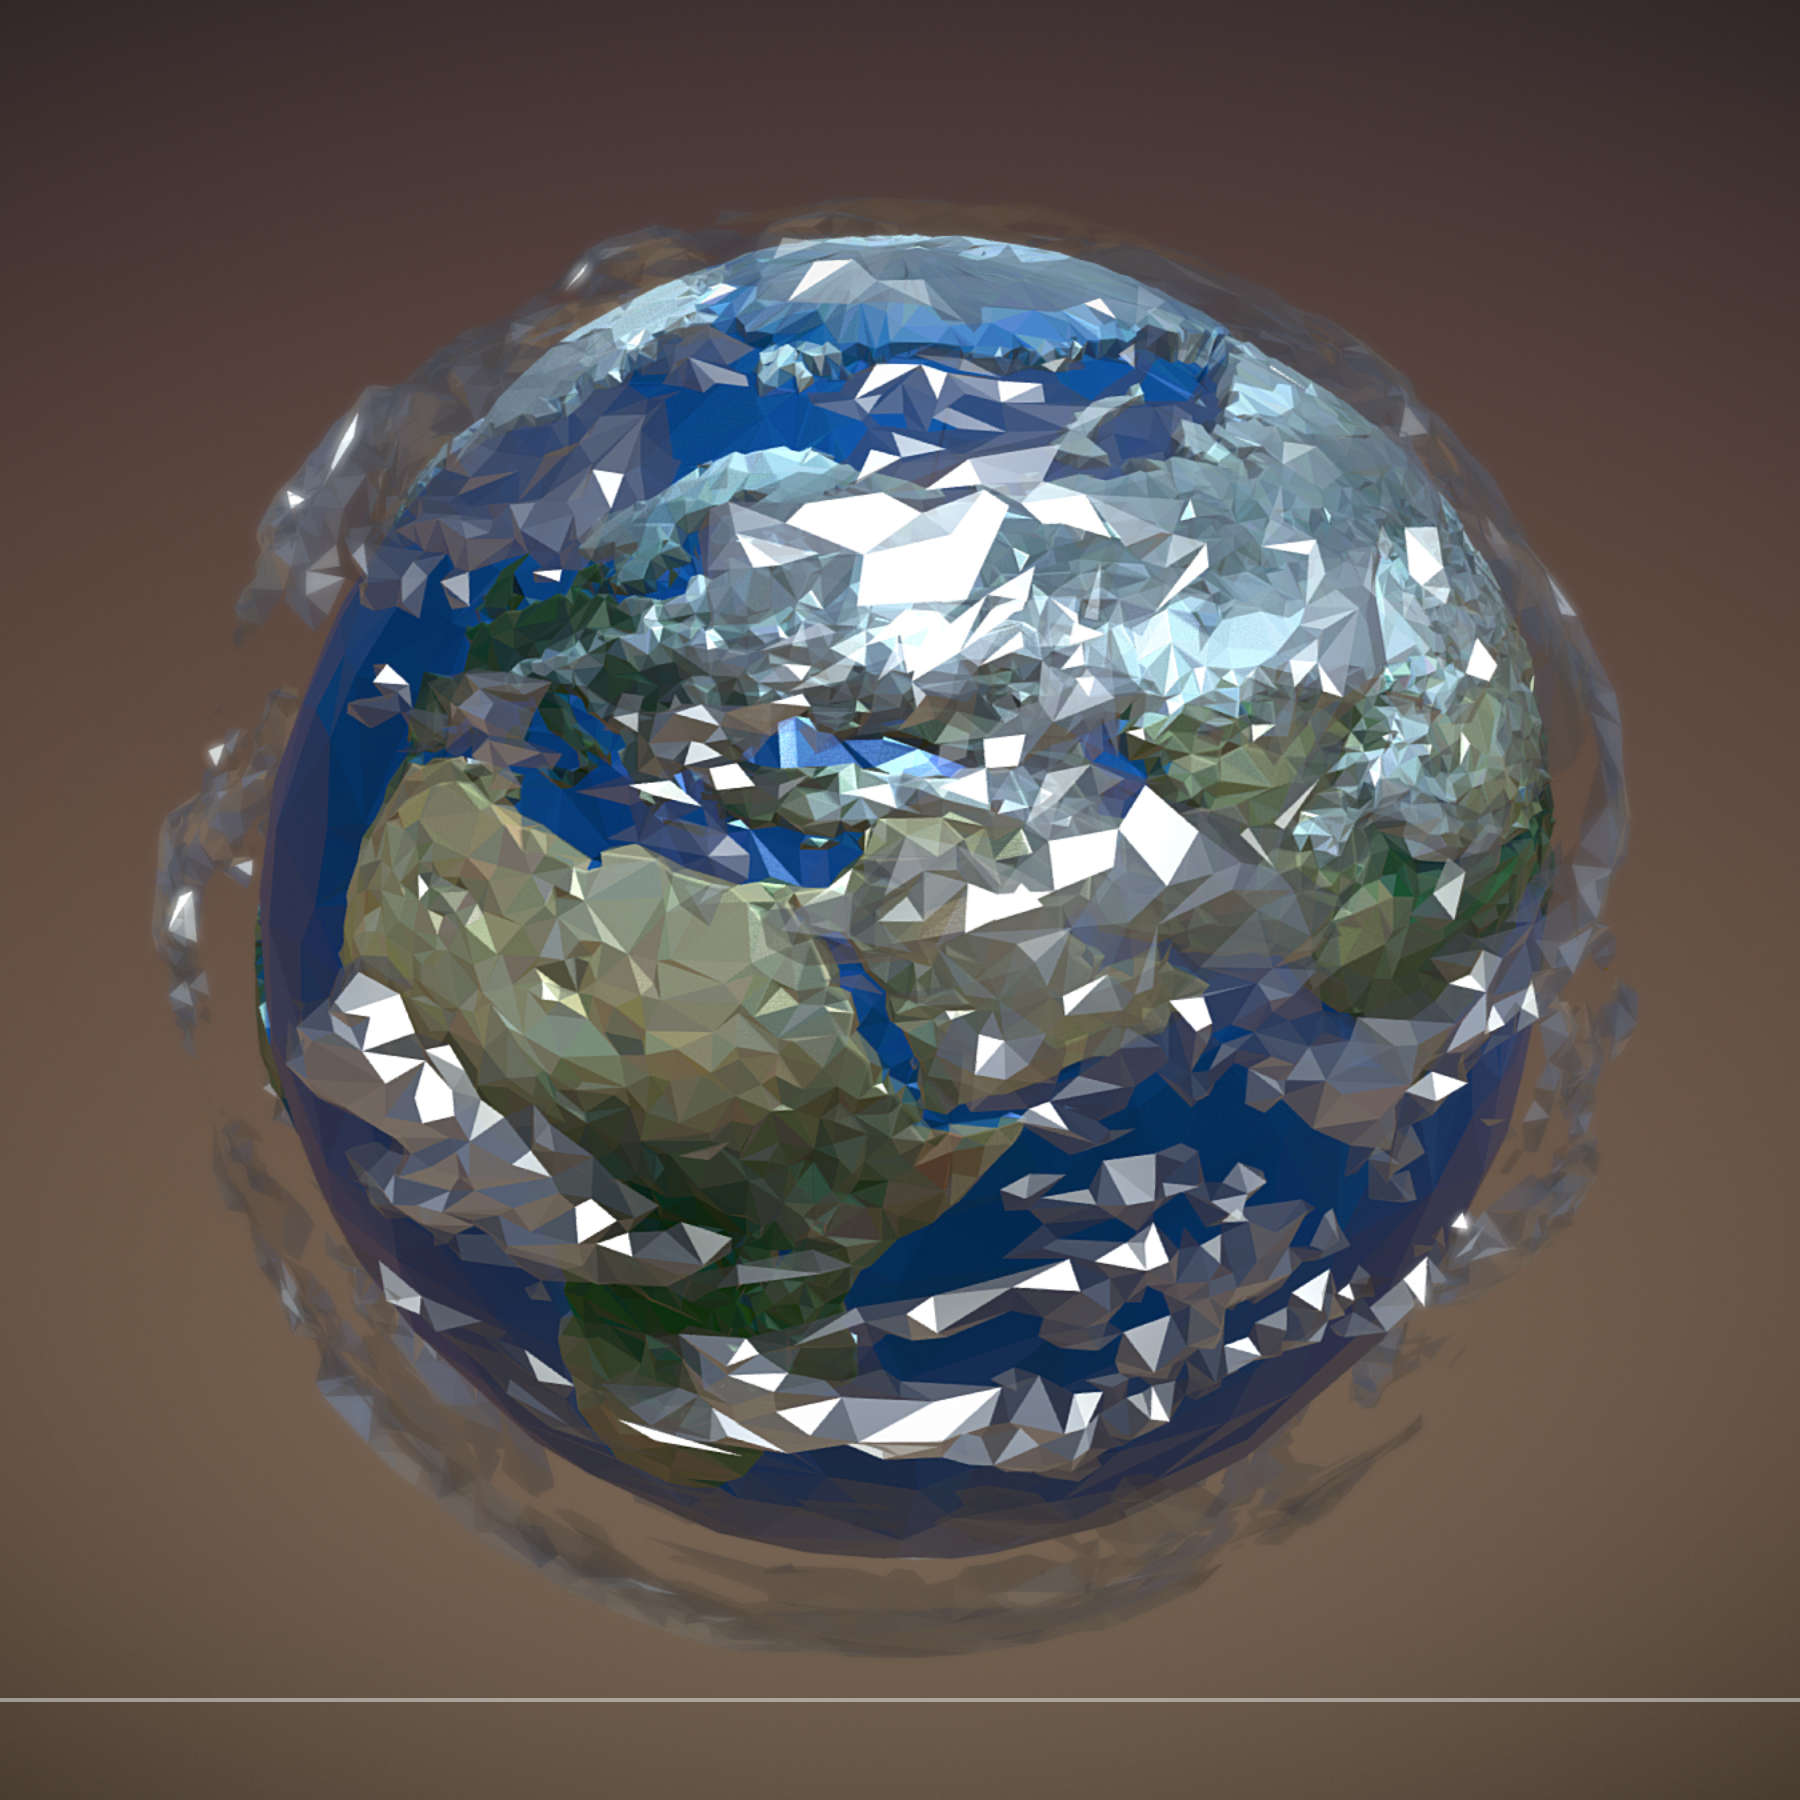 animated planet earth 3d model 3ds max fbx ma mb tga targa icb vda vst pix obj 271046